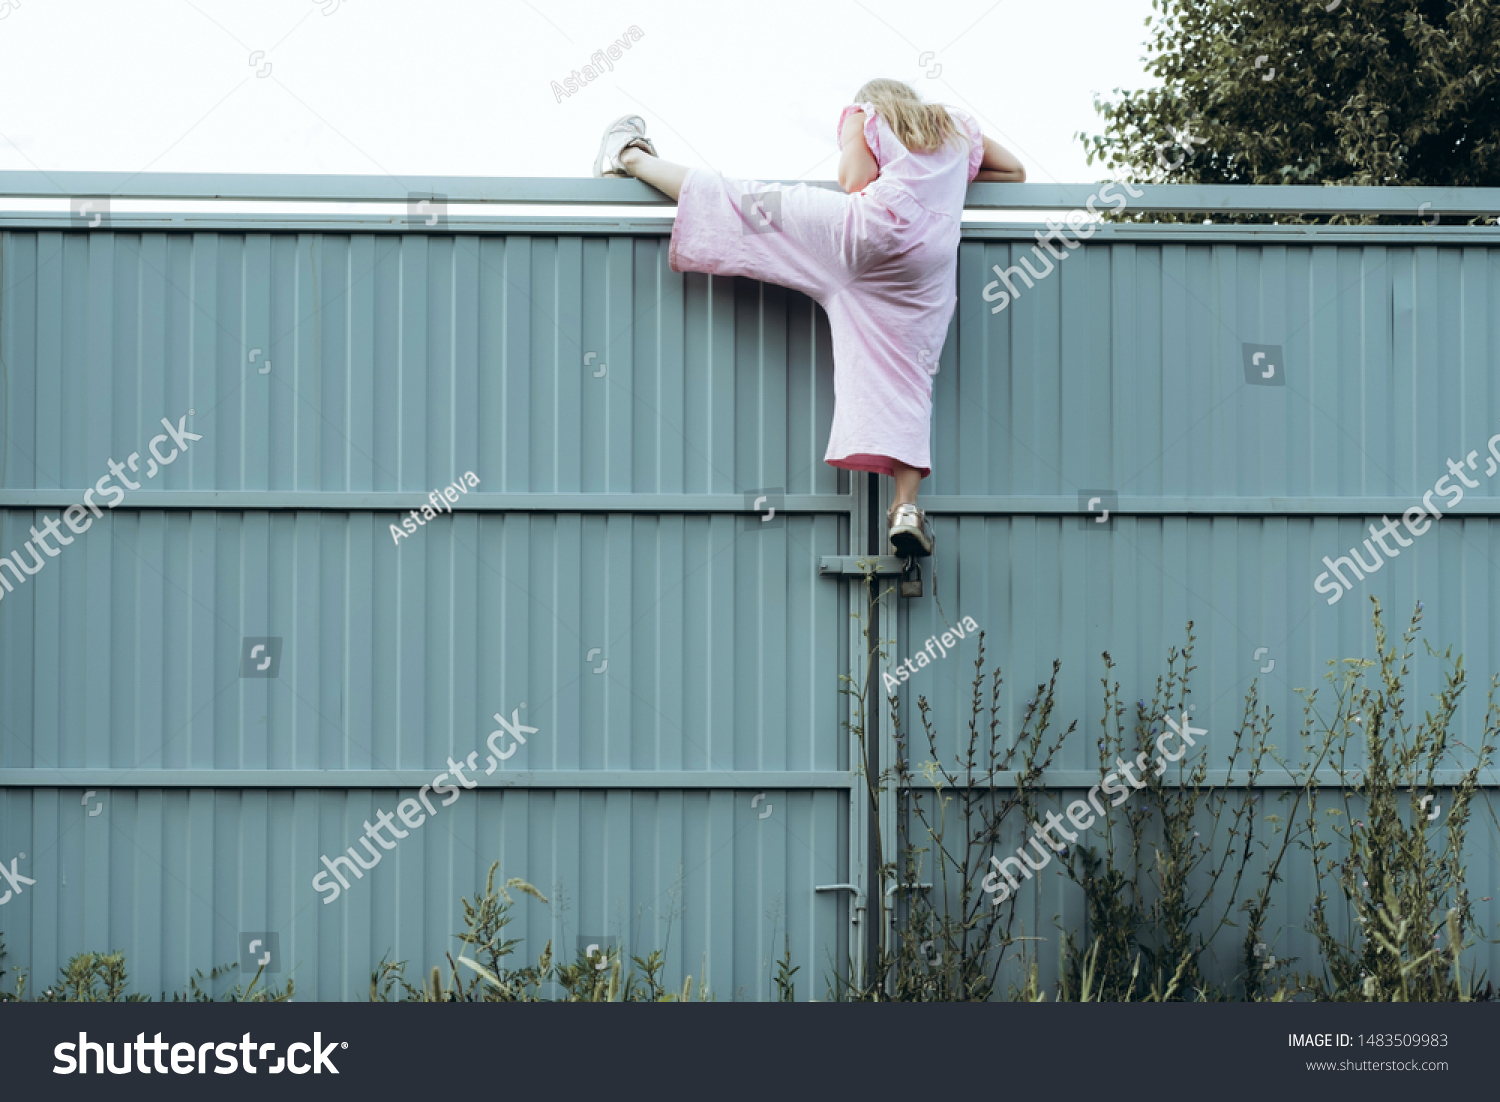 Girl climbing metal fence outdoor. Curious child on high white painted gates. Naughty kid playing outside, breaking rules. Childhood and youth concept. Restless teen entering private property #1483509983